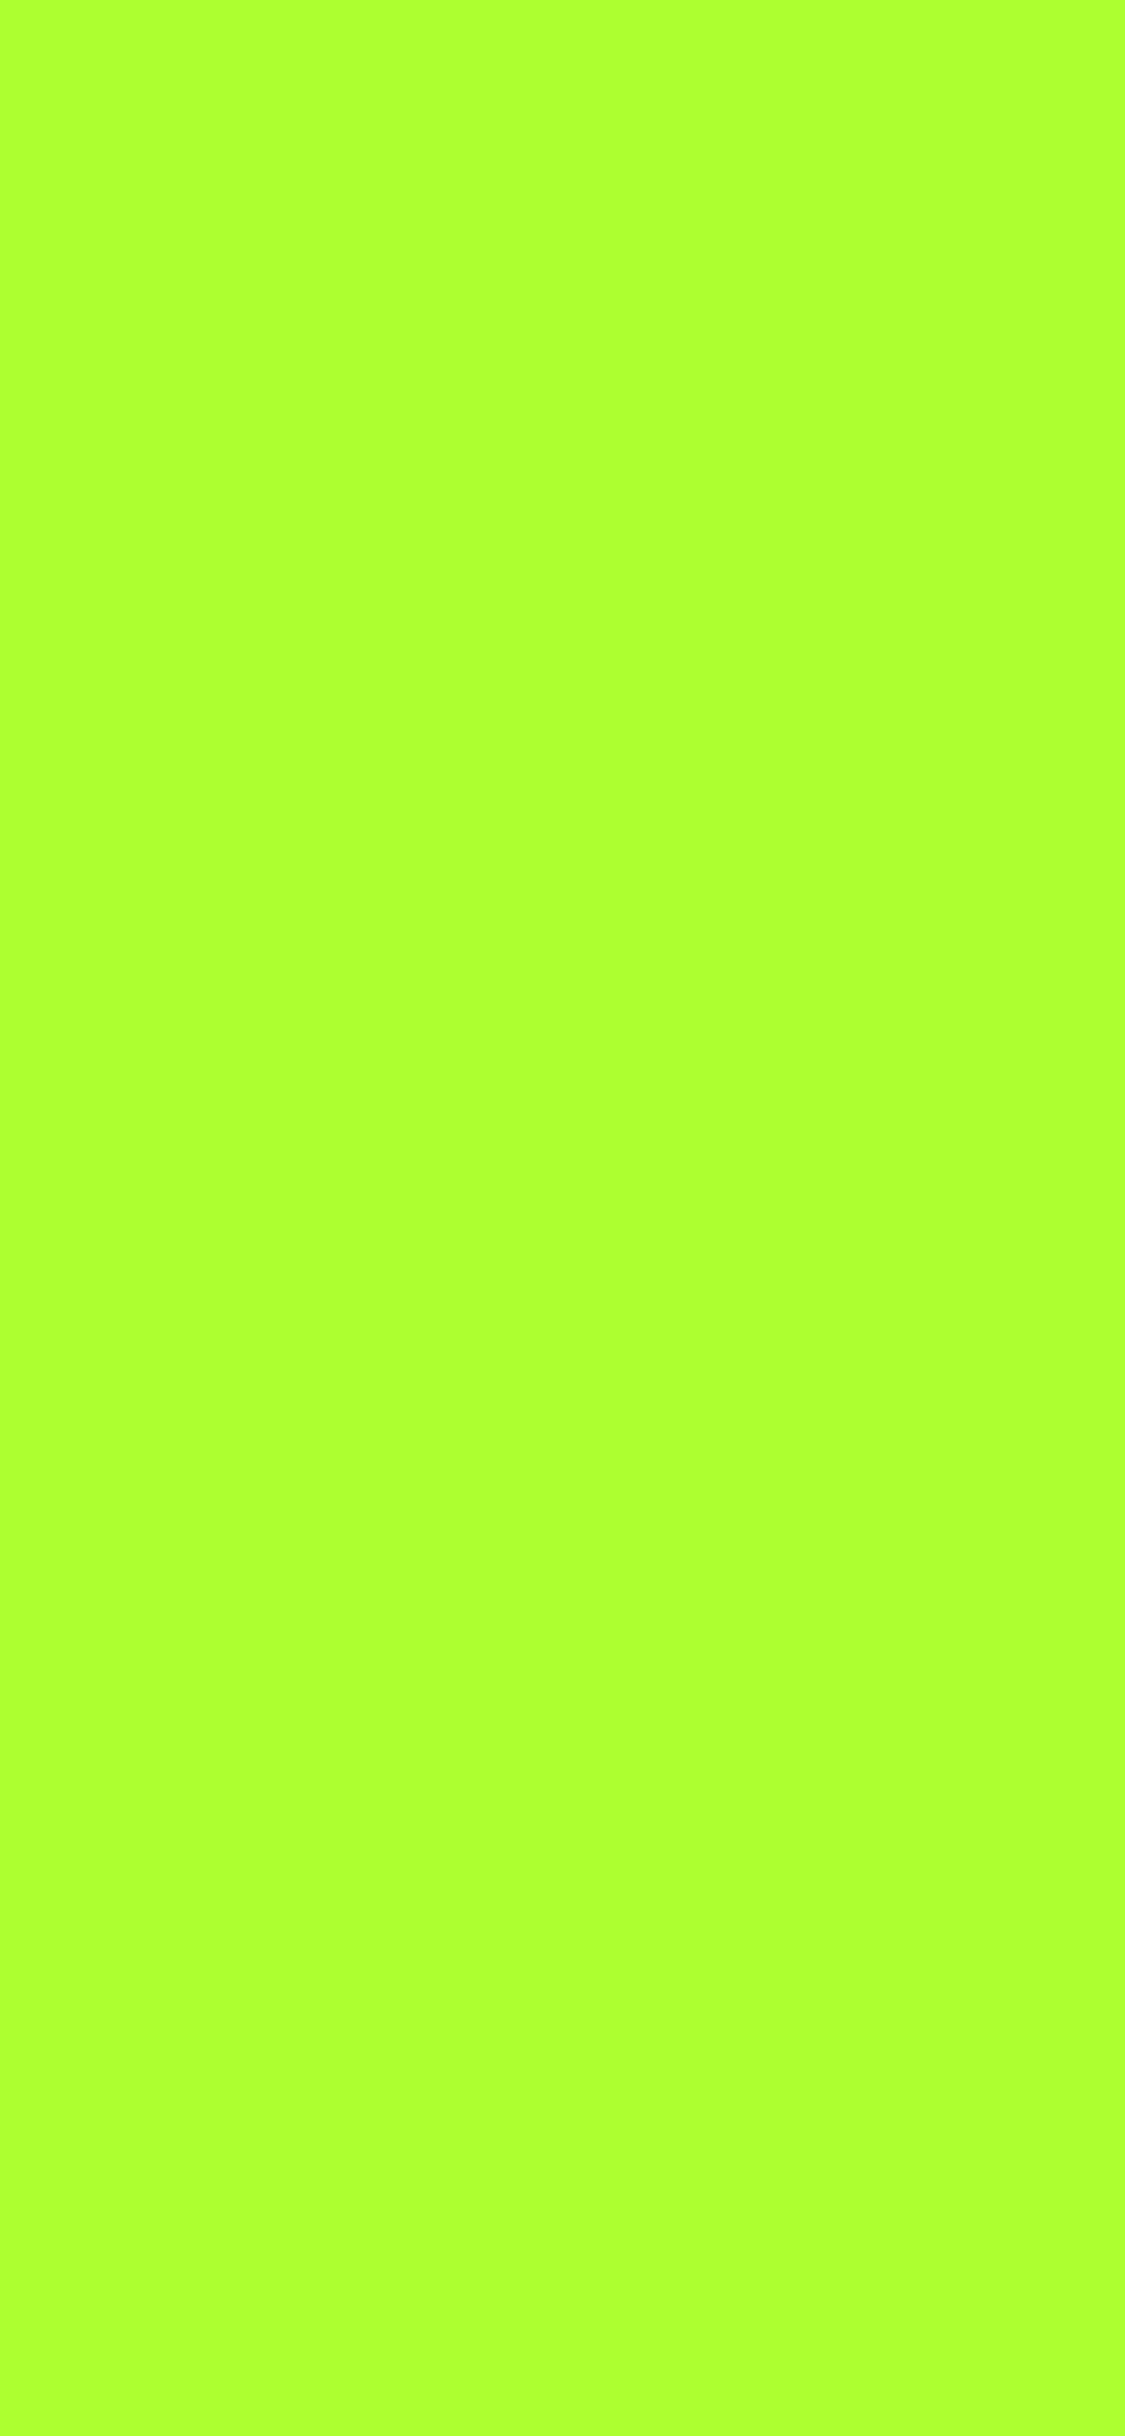 1125x2436 Green-yellow Solid Color Background